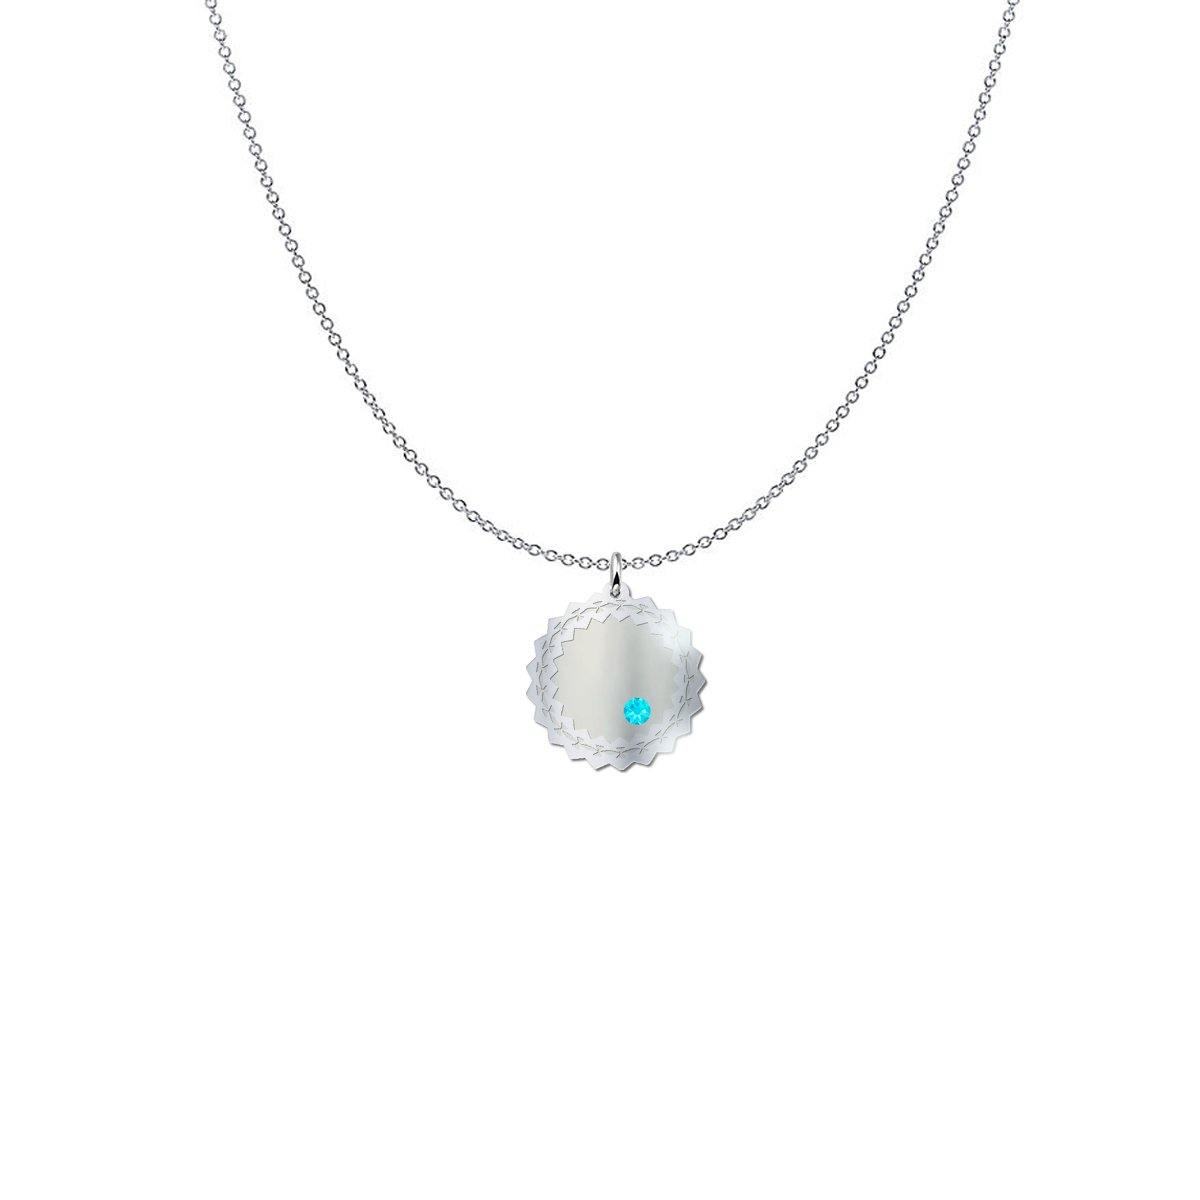 Wreath Birth Stone Sterling Silver Necklace - Something to Cherish - Gifts for life because life is a gift.